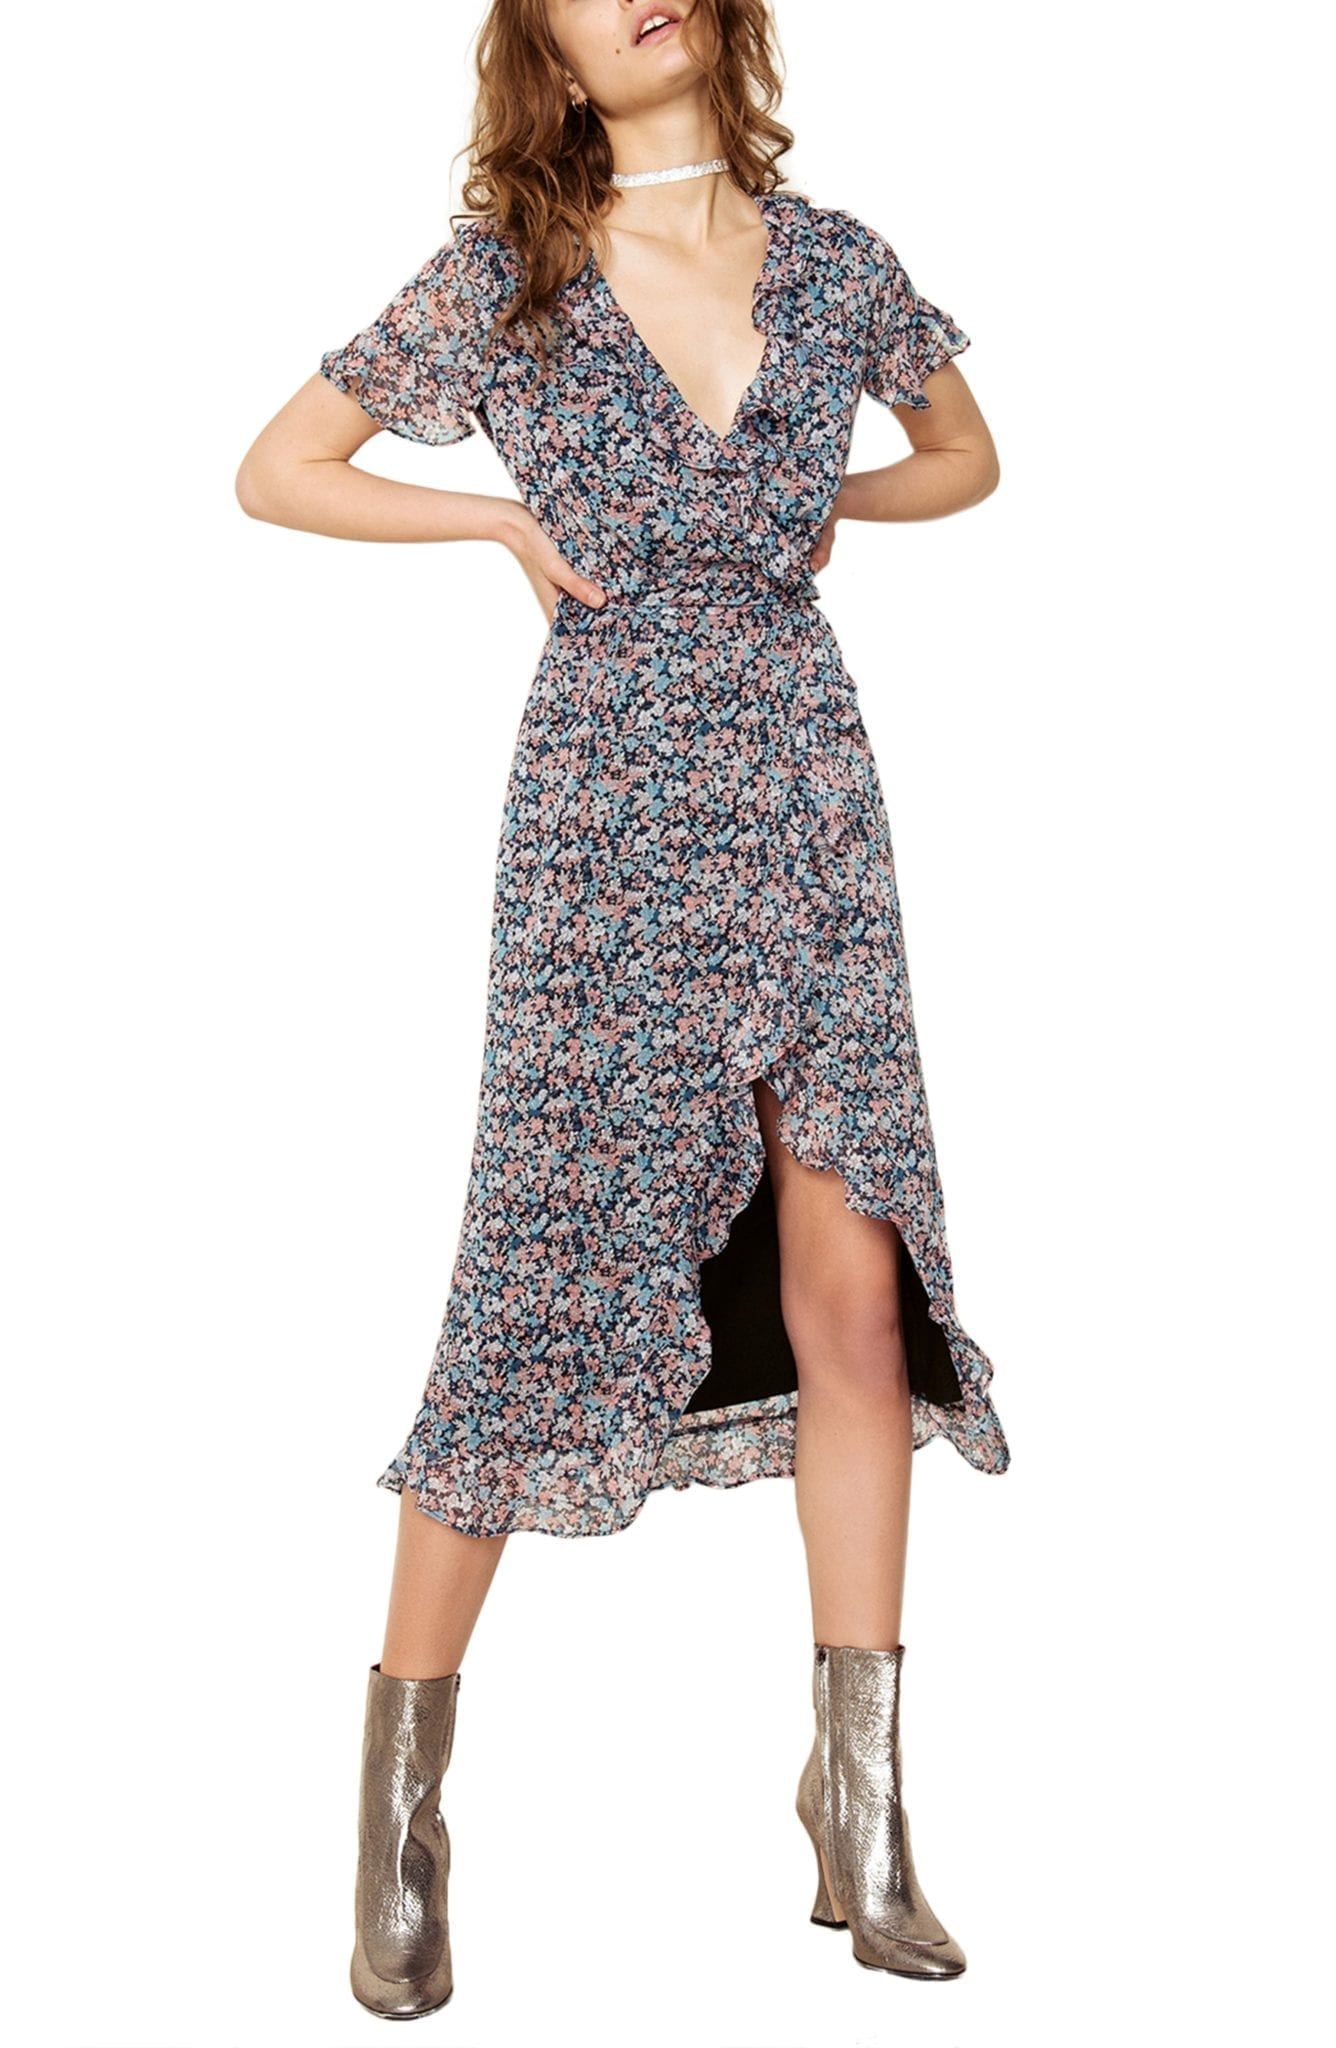 a39f4f07d6d THE EAST ORDER Cece Wrap Floral Printed Dress - We Select Dresses